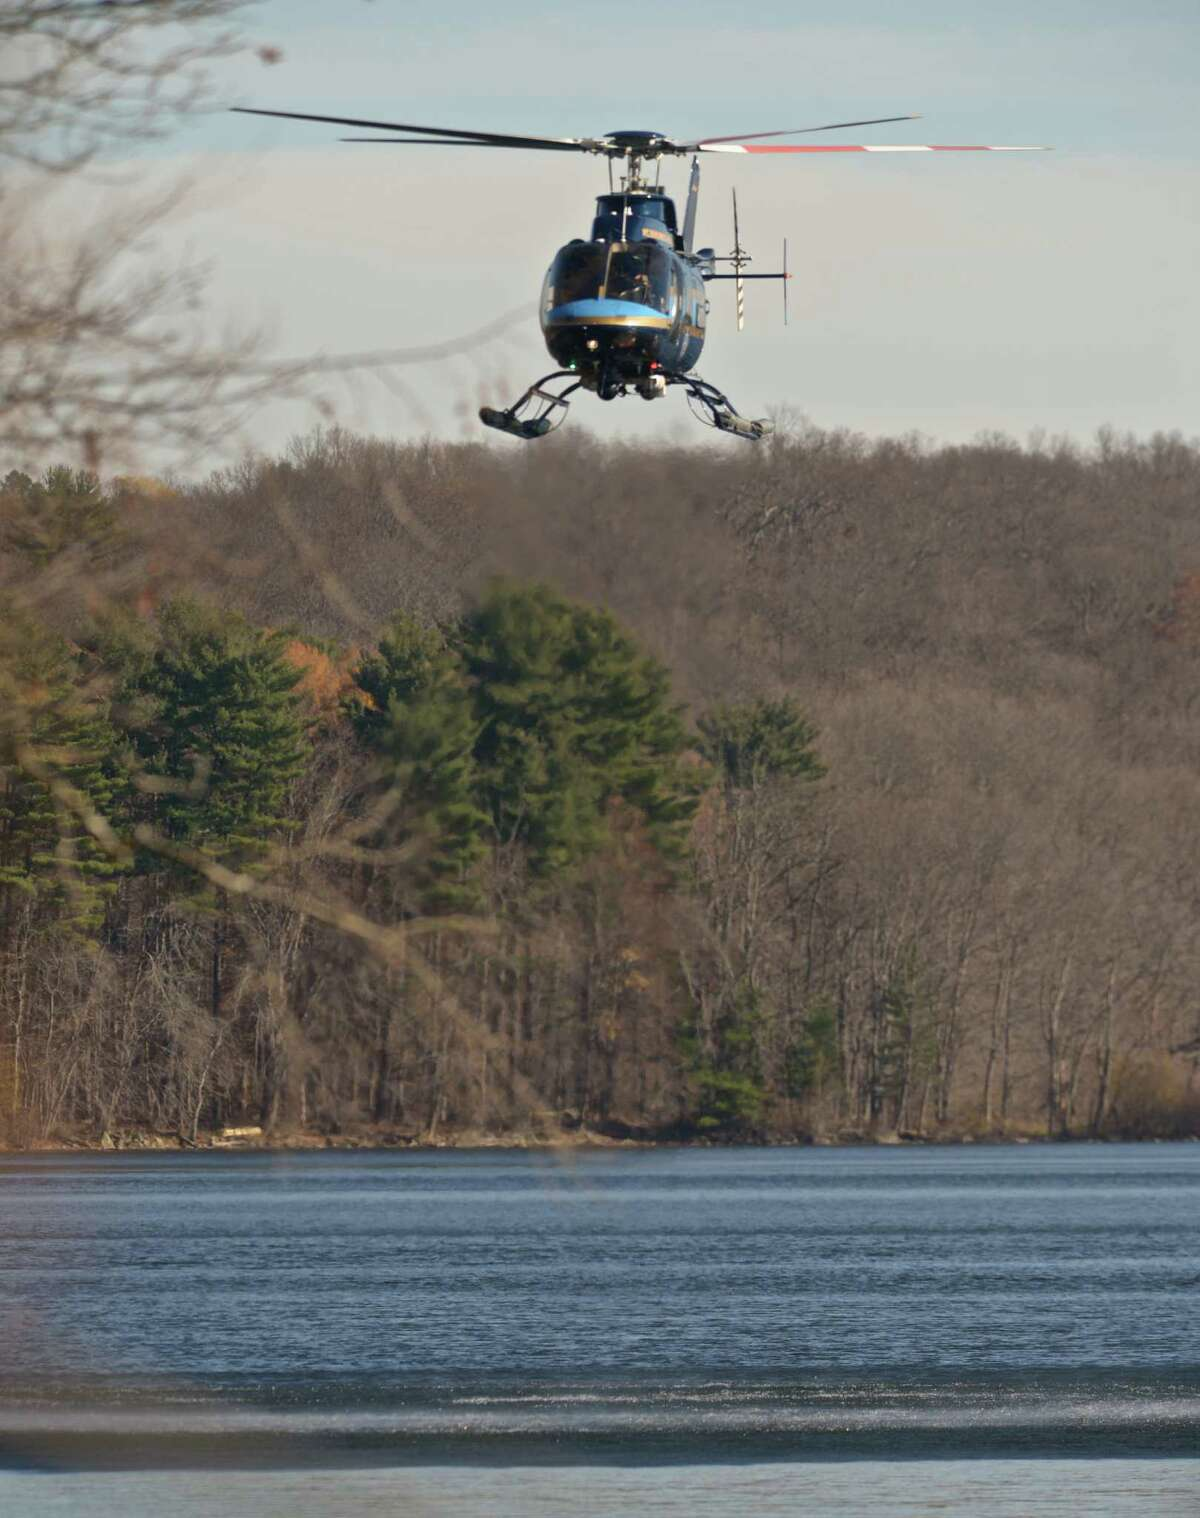 A New York State Police helicopter flies over the Titicus Reservoir, in New York State, while searching for a plane which went missing during approach to Danbury Airport, Danbury, Conn, on Thursday afternoon. Eric Horsa, of Ridgefield, said his father, Val Horsa, and his stepmother, Taew Robinson, were on the small plane. Authorities, however, have not yet identified those on board.Friday, November 20, 2015, North Salem, NY.